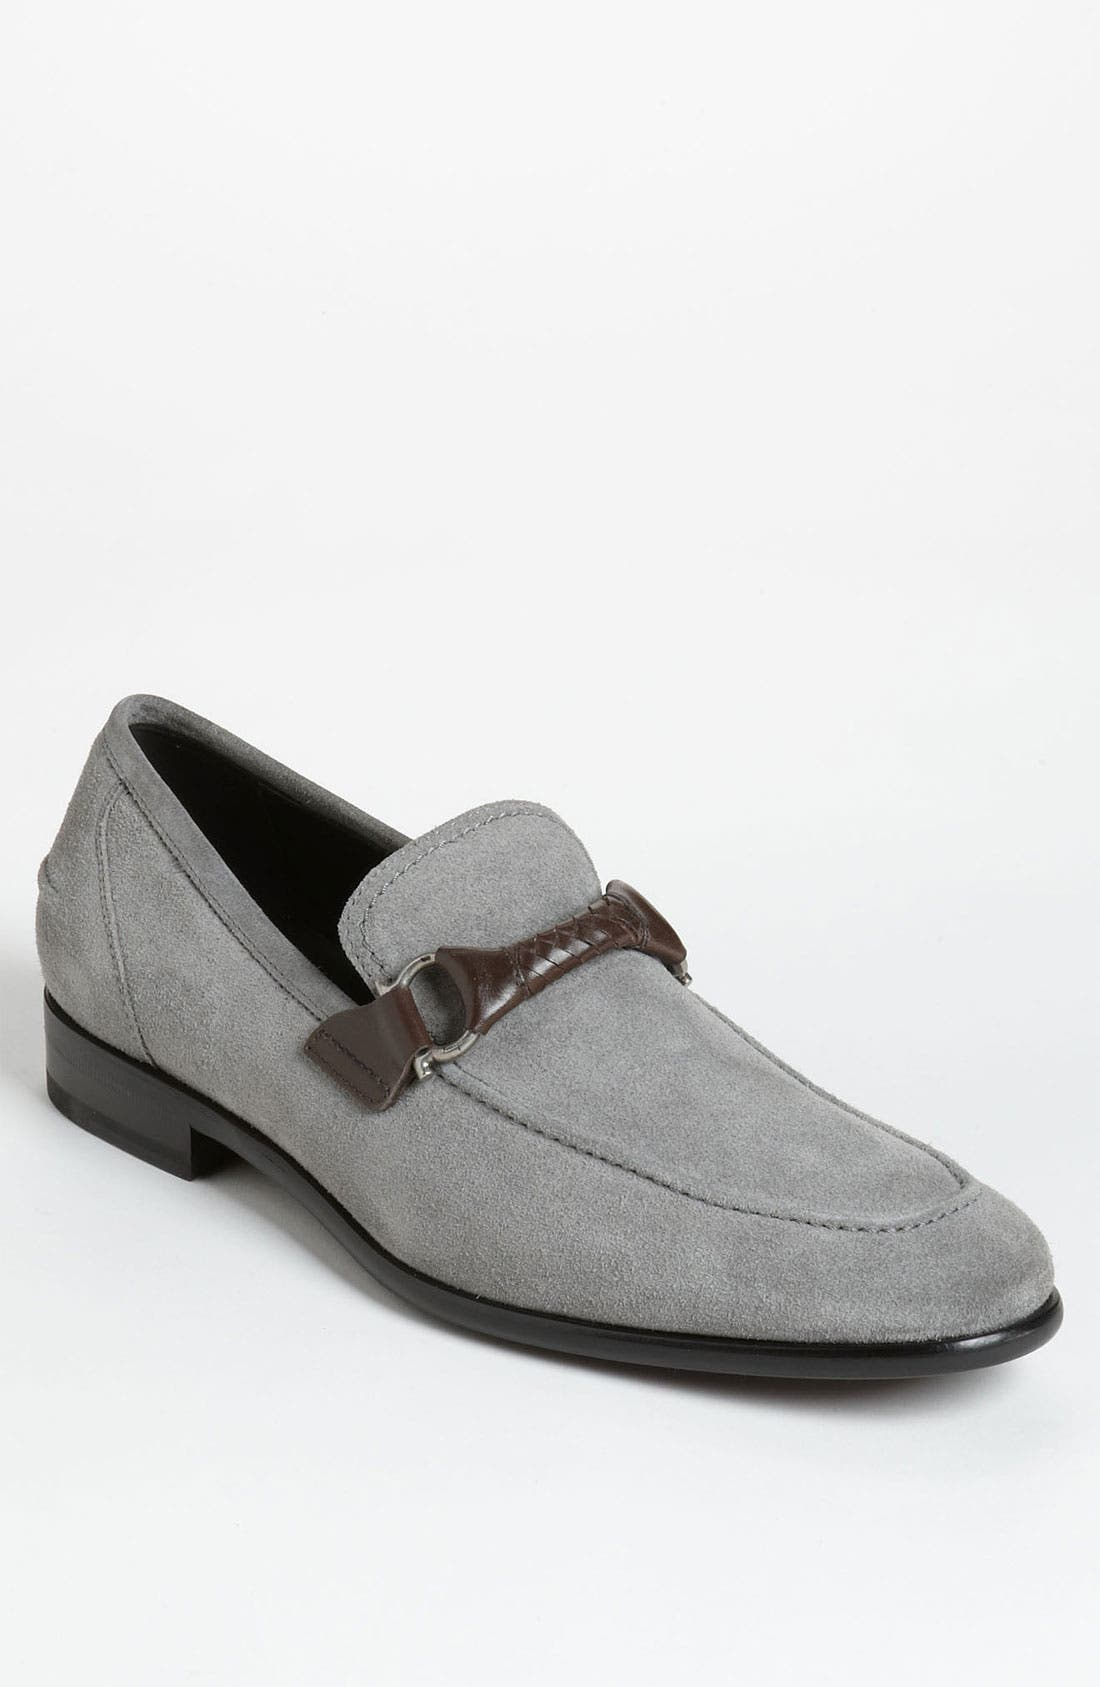 Alternate Image 1 Selected - Salvatore Ferragamo 'Twist 2' Bit Loafer